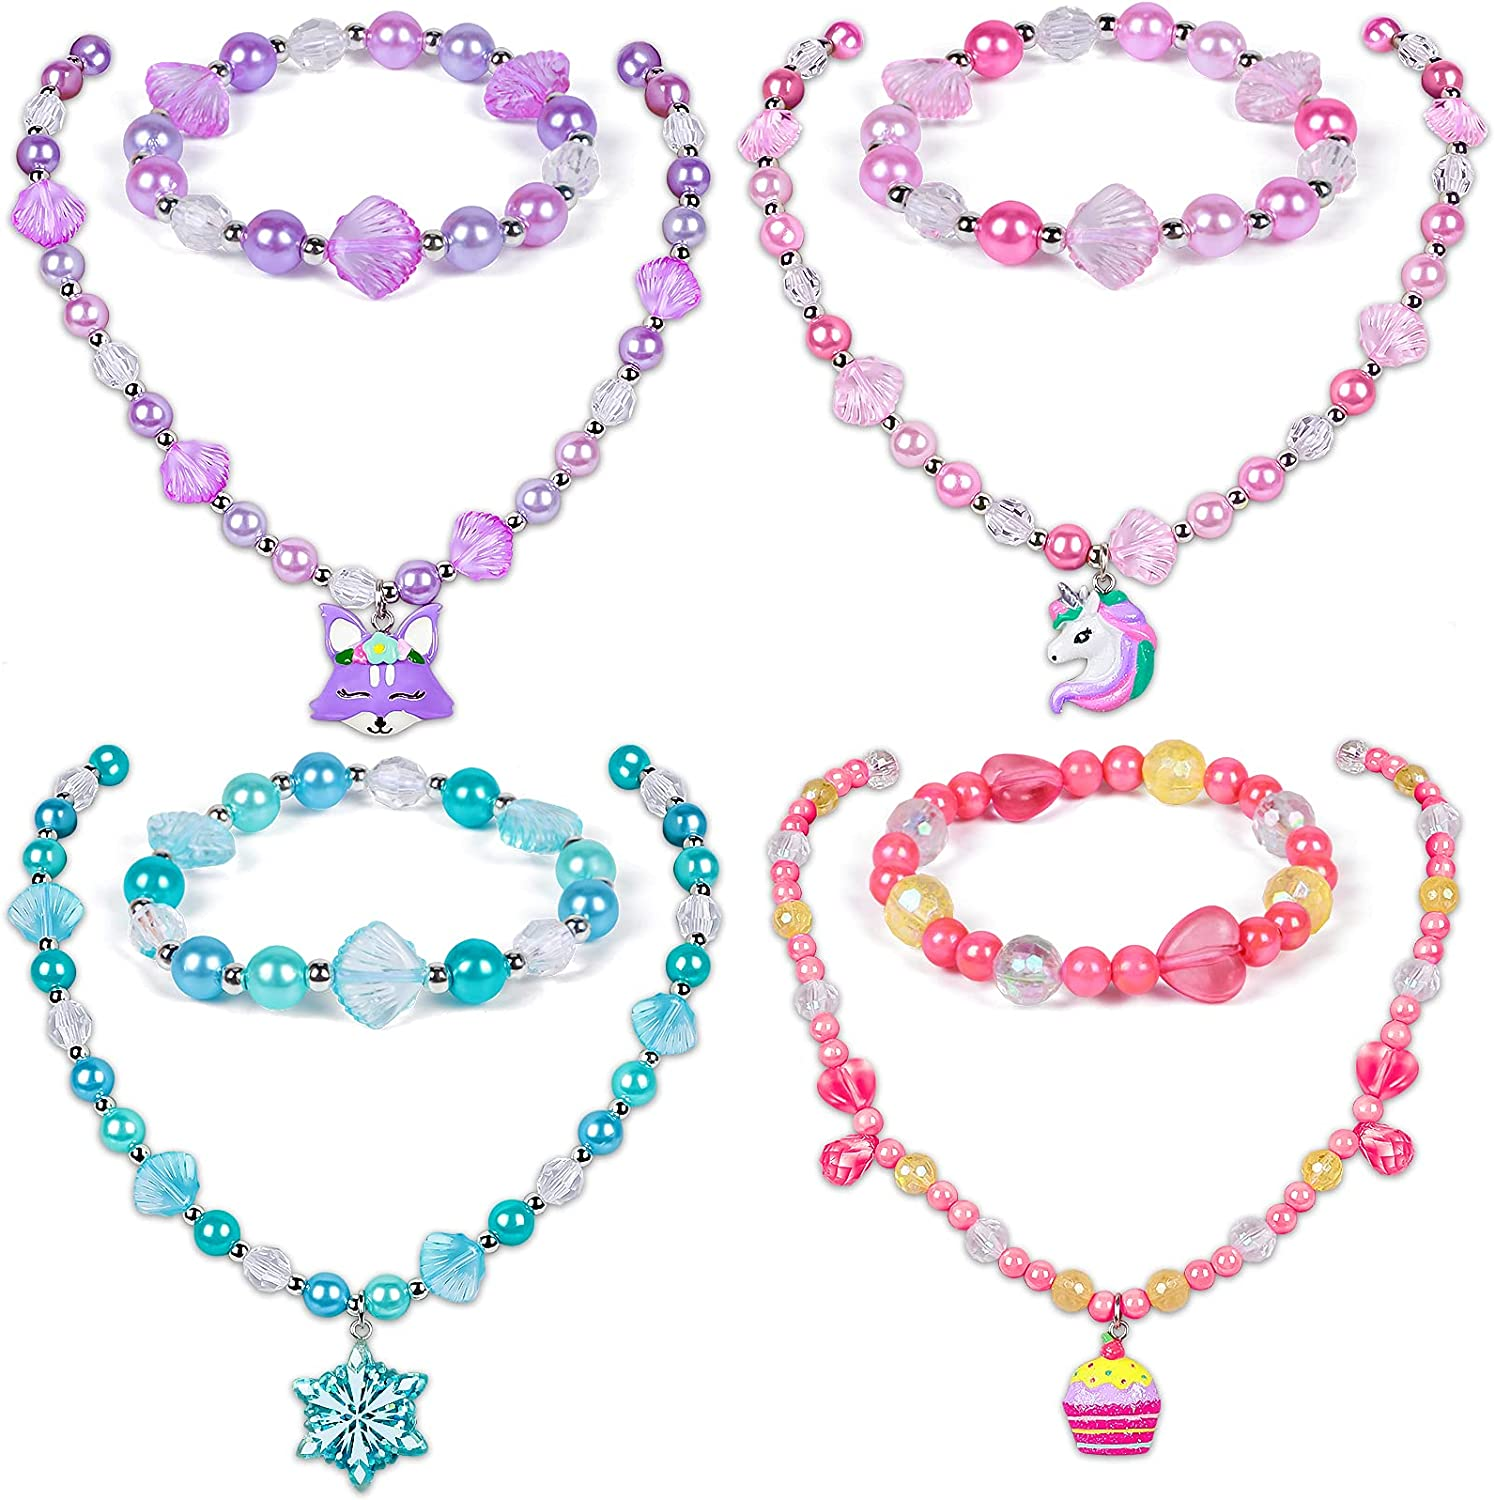 Rare Winrayk 4Set Girls Beads Necklaces with Set Bracelets Super beauty product restock quality top Jewelry Sp